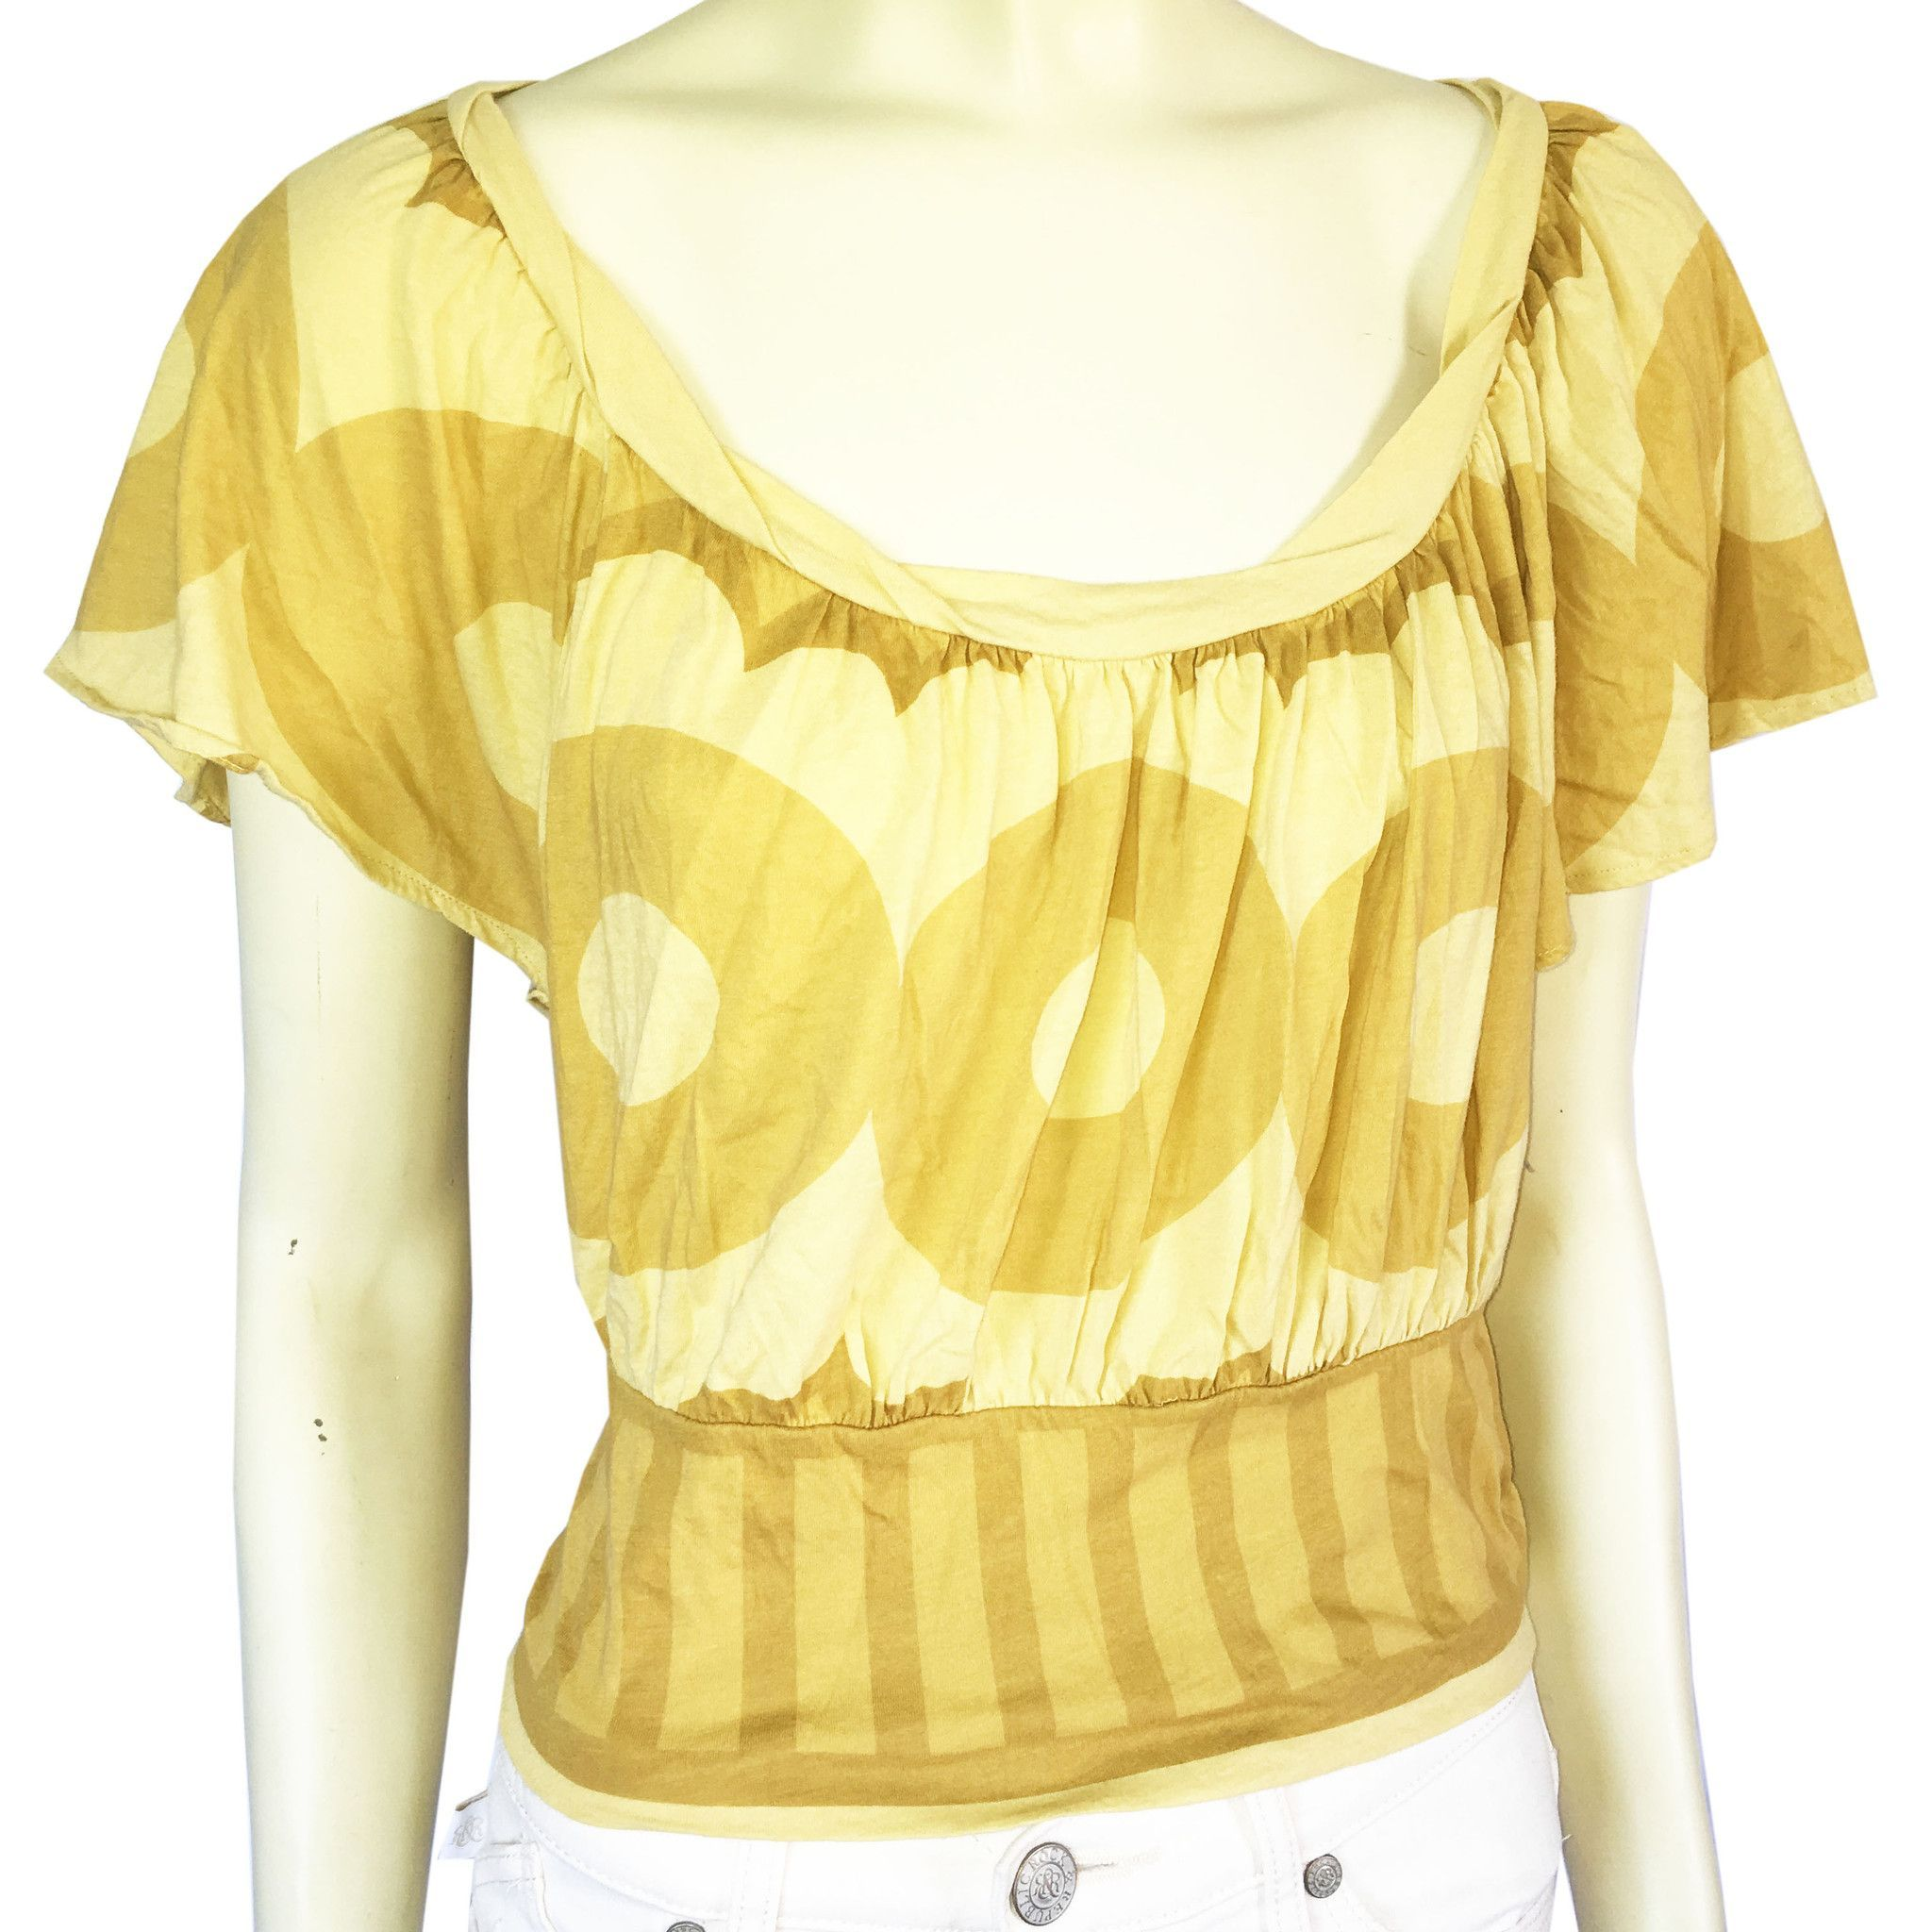 Anthropologie Language Los Angeles Banded Waist Scoop Neck Tee Top, Size S